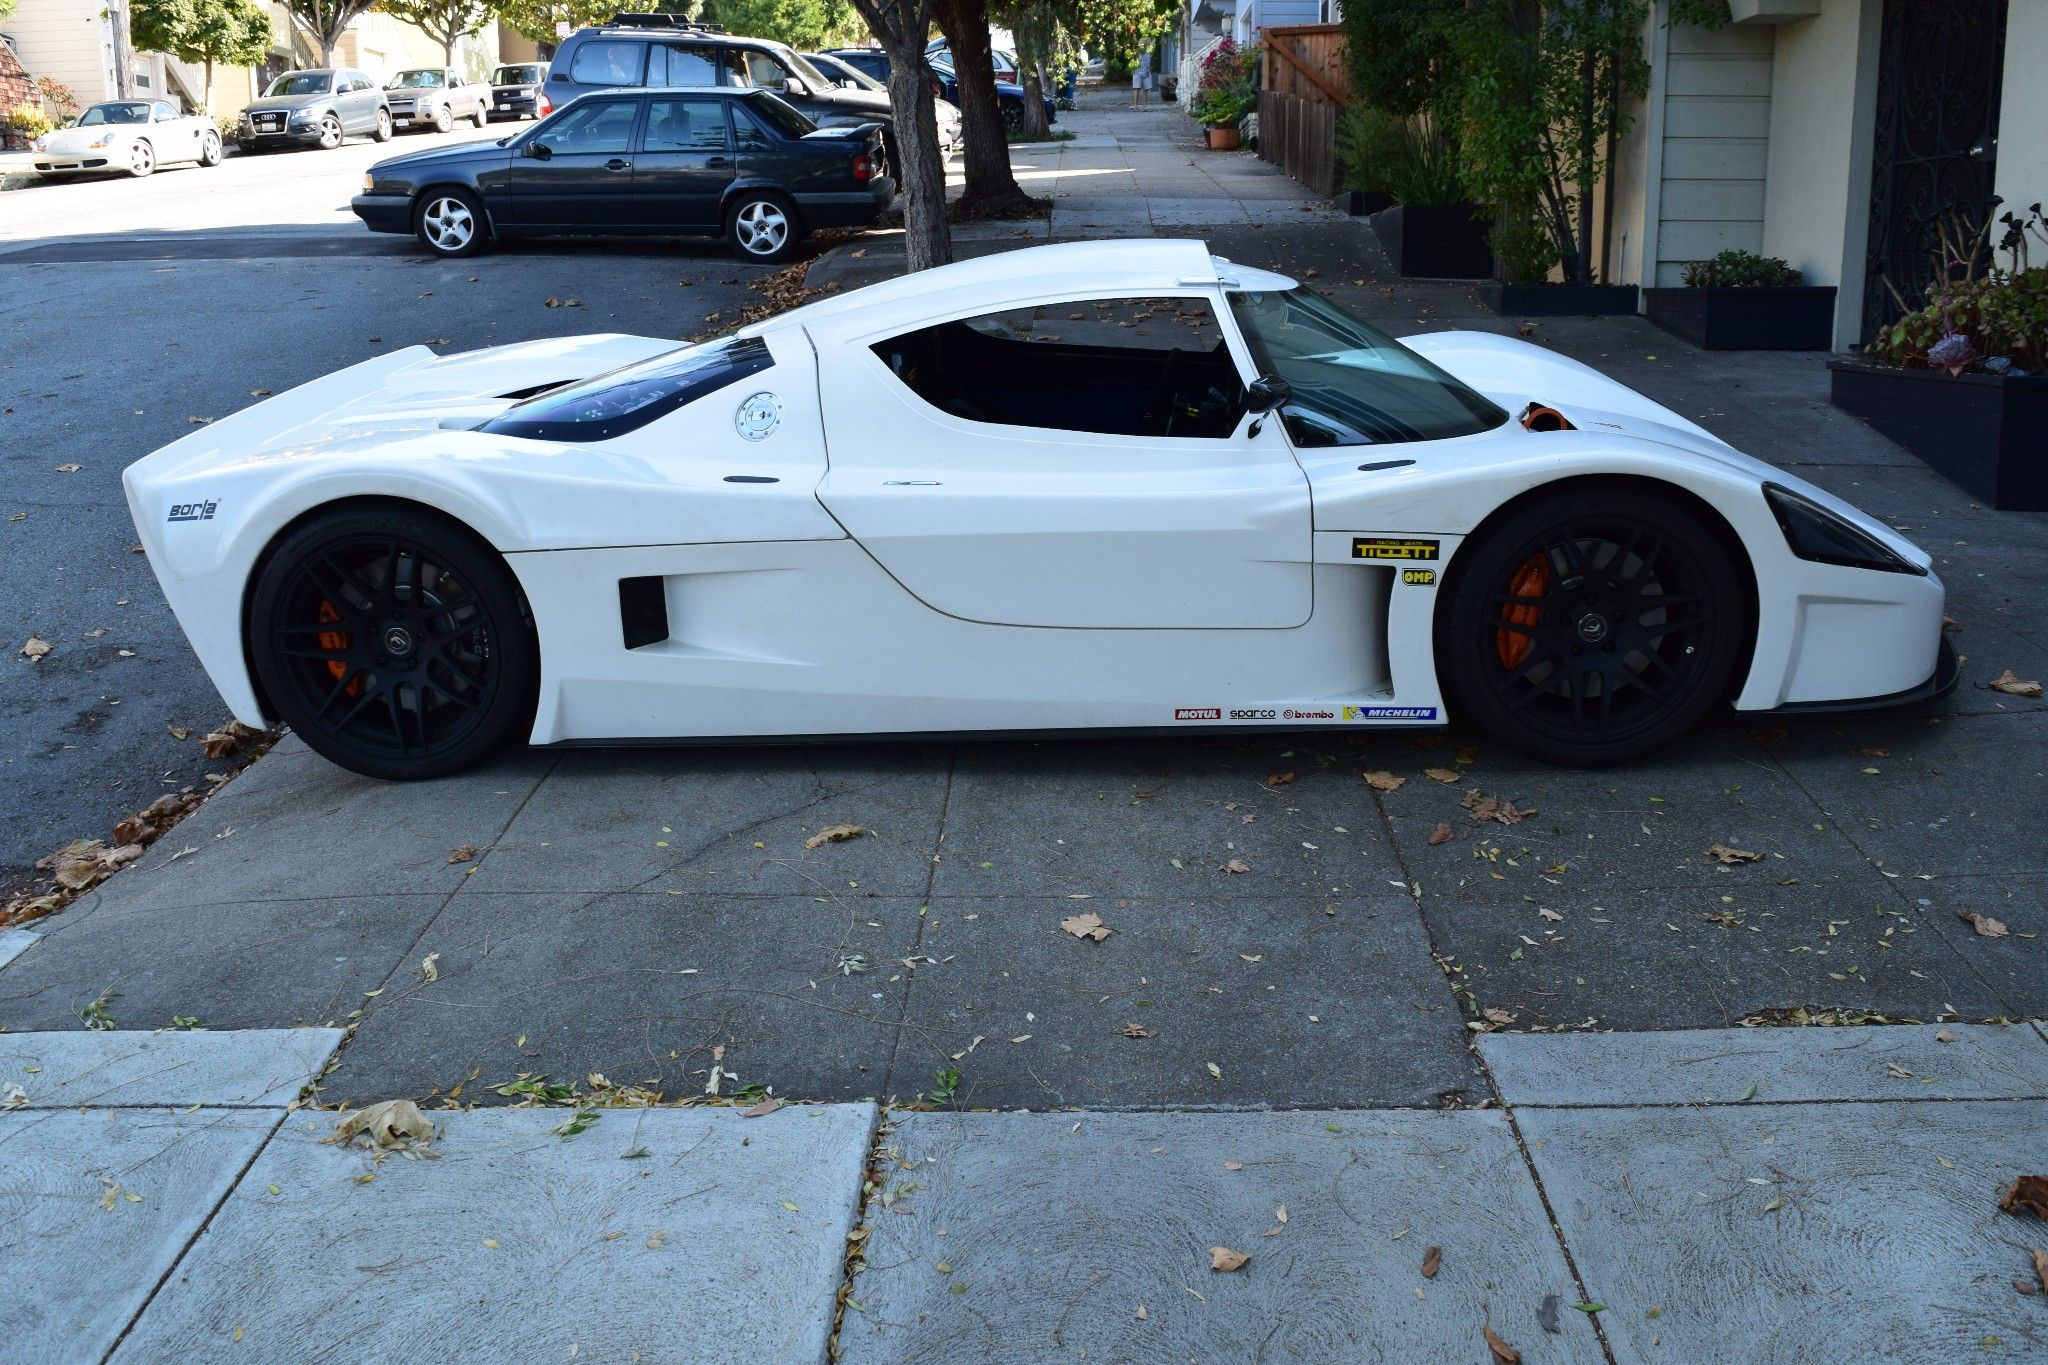 Gt3 Powered 2012 Superlite Coupe Replica Cars Kit Cars Jeep Cars